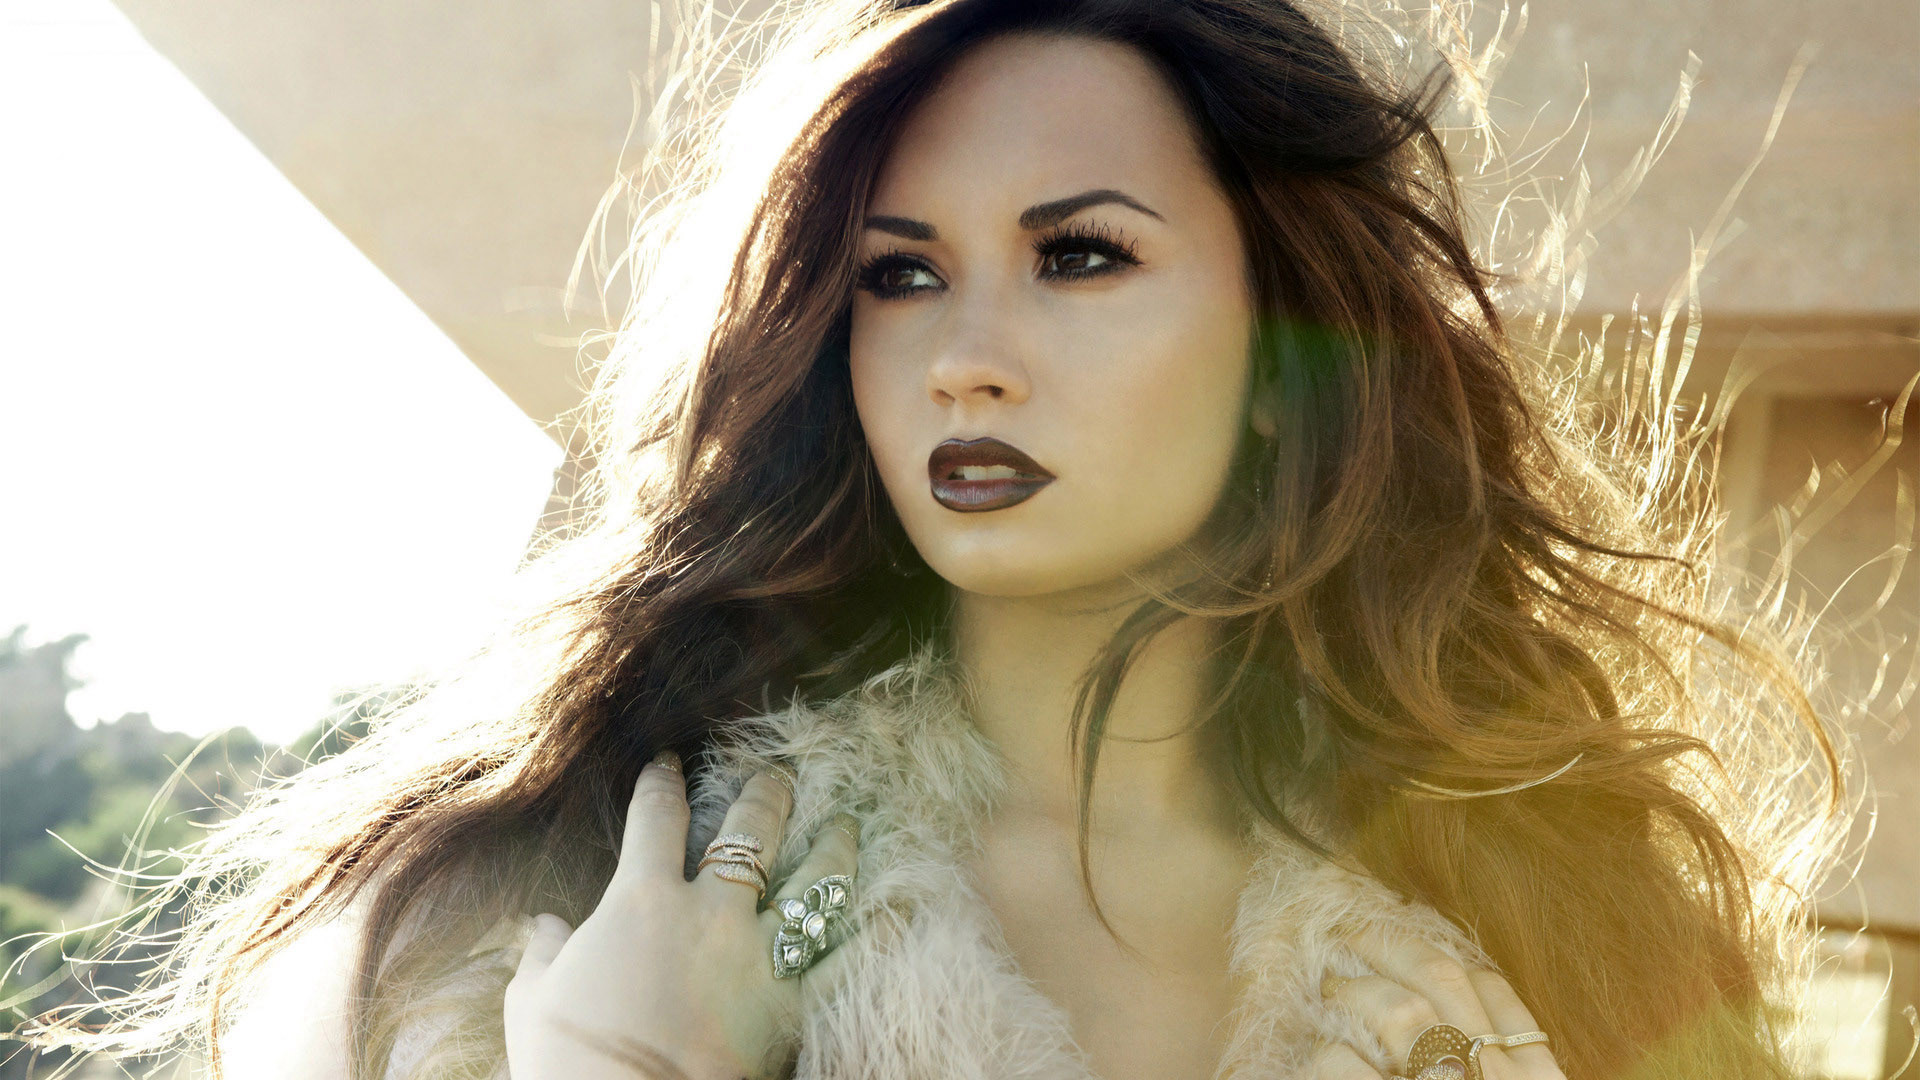 full hd p demi lovato wallpapers hd, desktop backgrounds 1920x1080